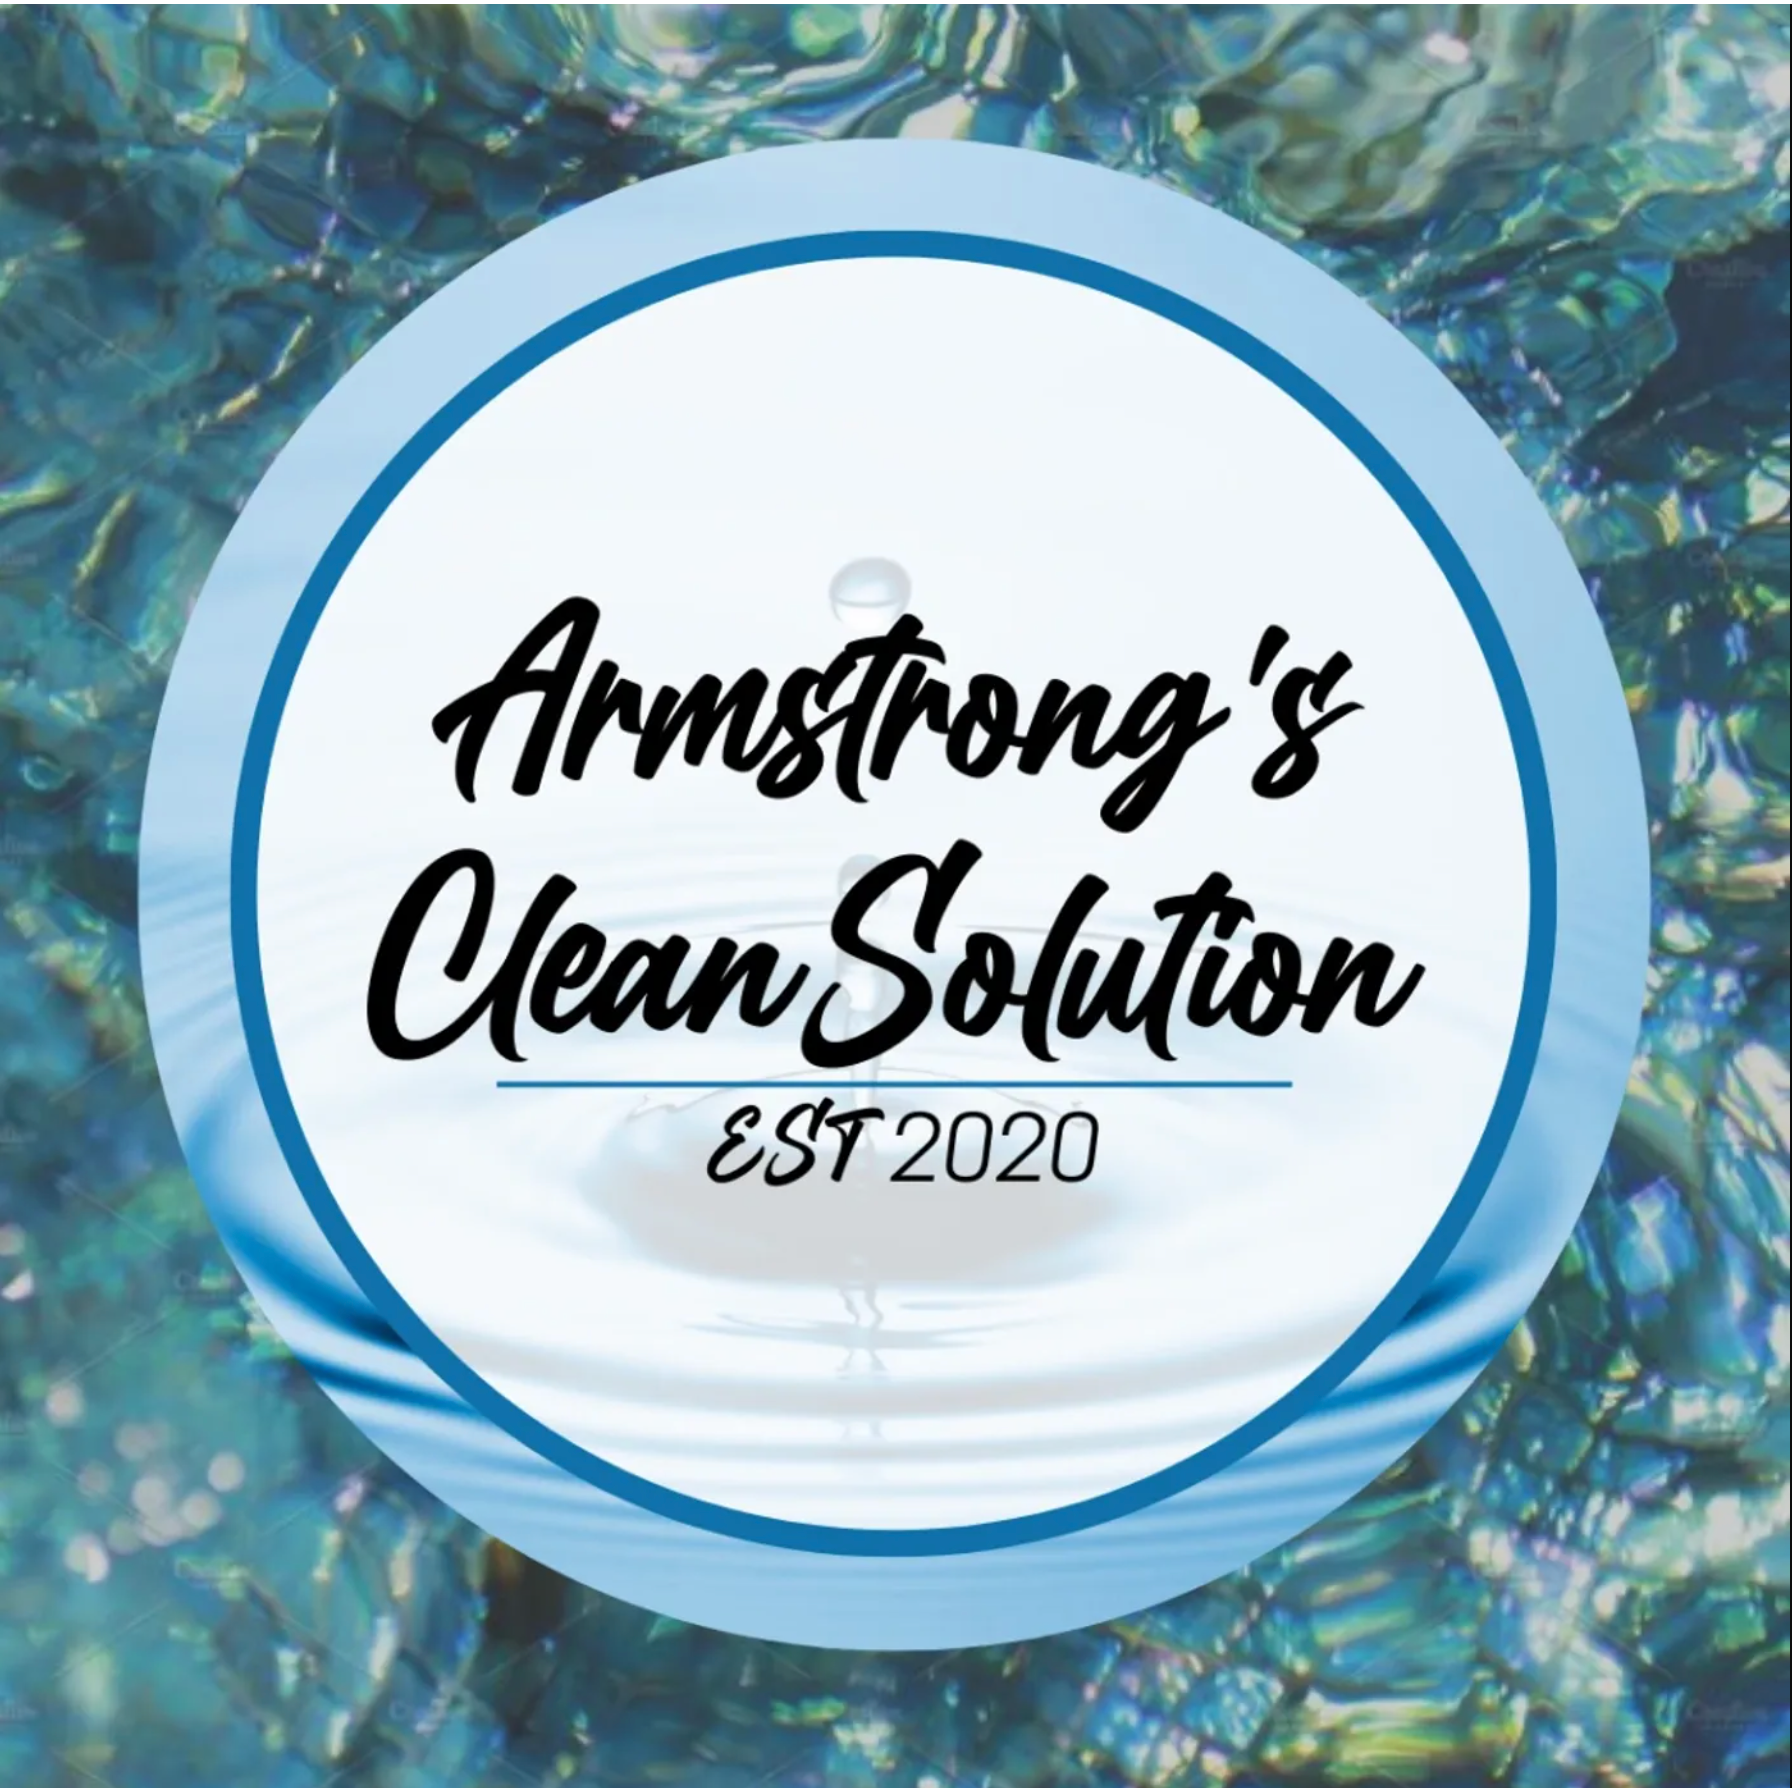 Armstrong's Clean Solutions